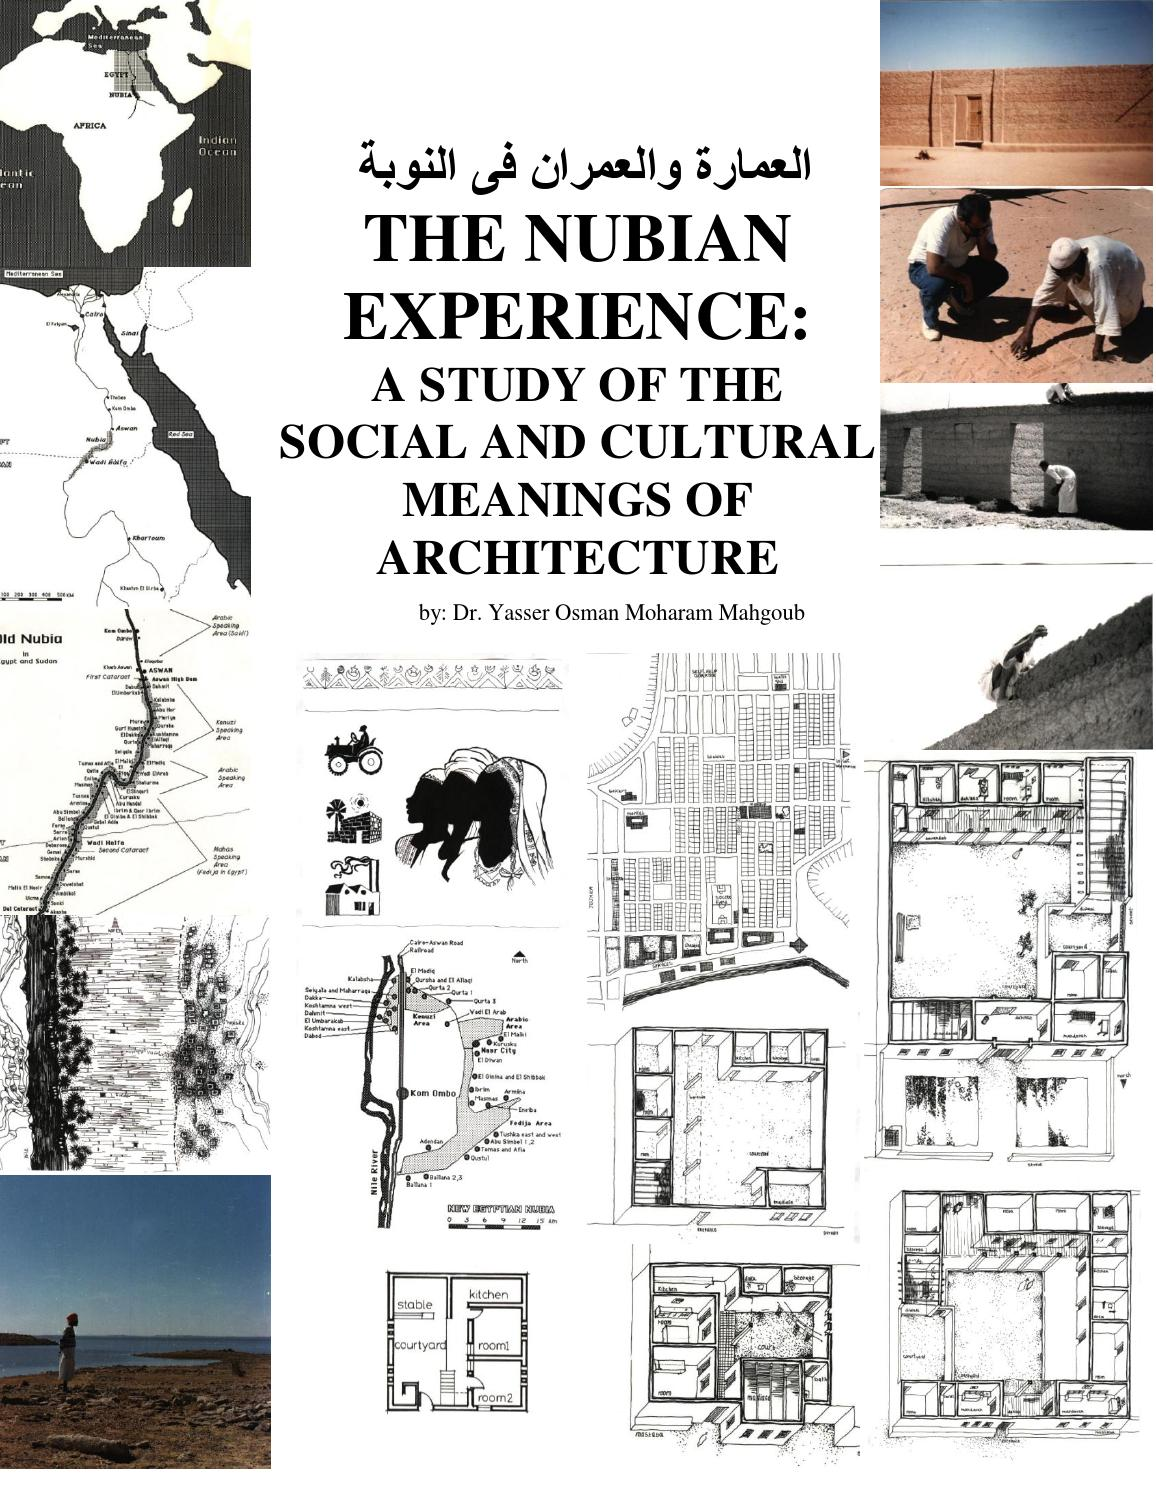 THE NUBIAN EXPERIENCE: A STUDY OF THE SOCIAL AND CULTURAL